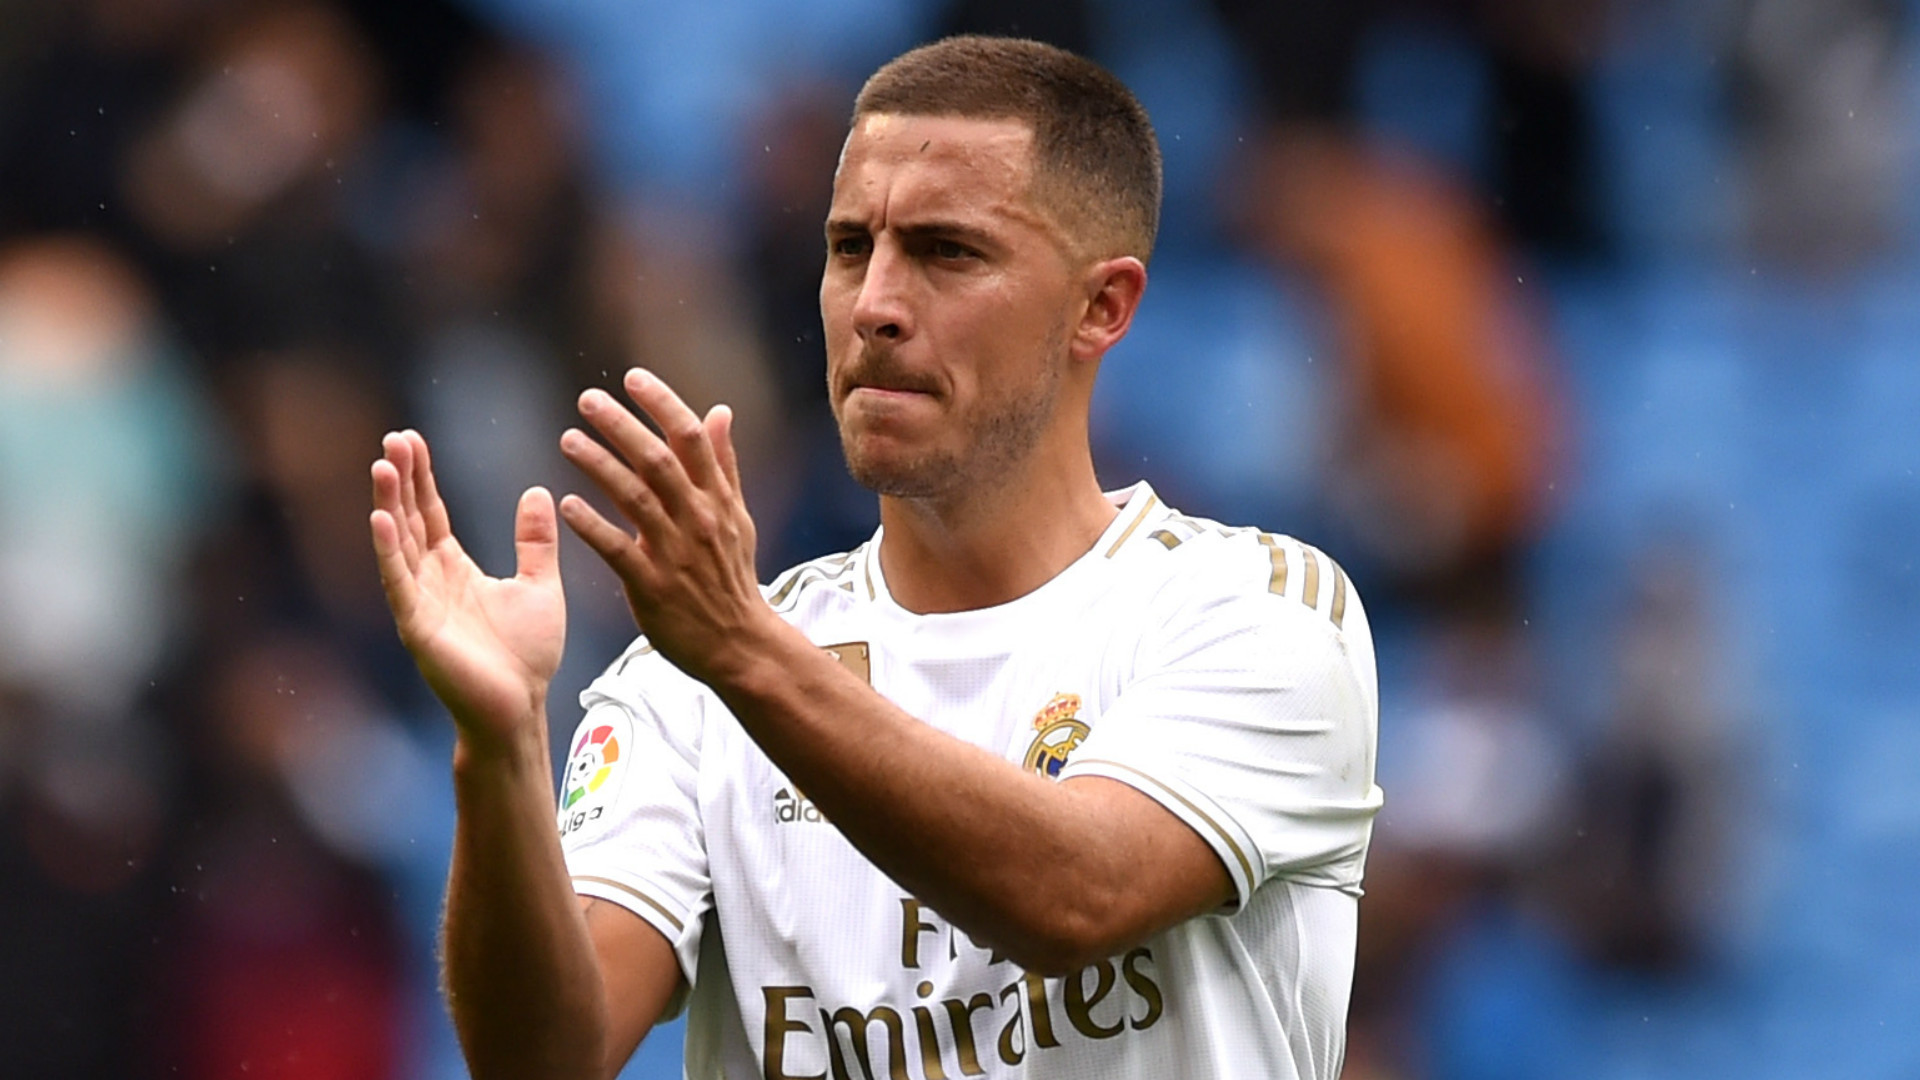 Hazard: I never felt it was a disaster if I lost with Chelsea - the fans expect more at Madrid